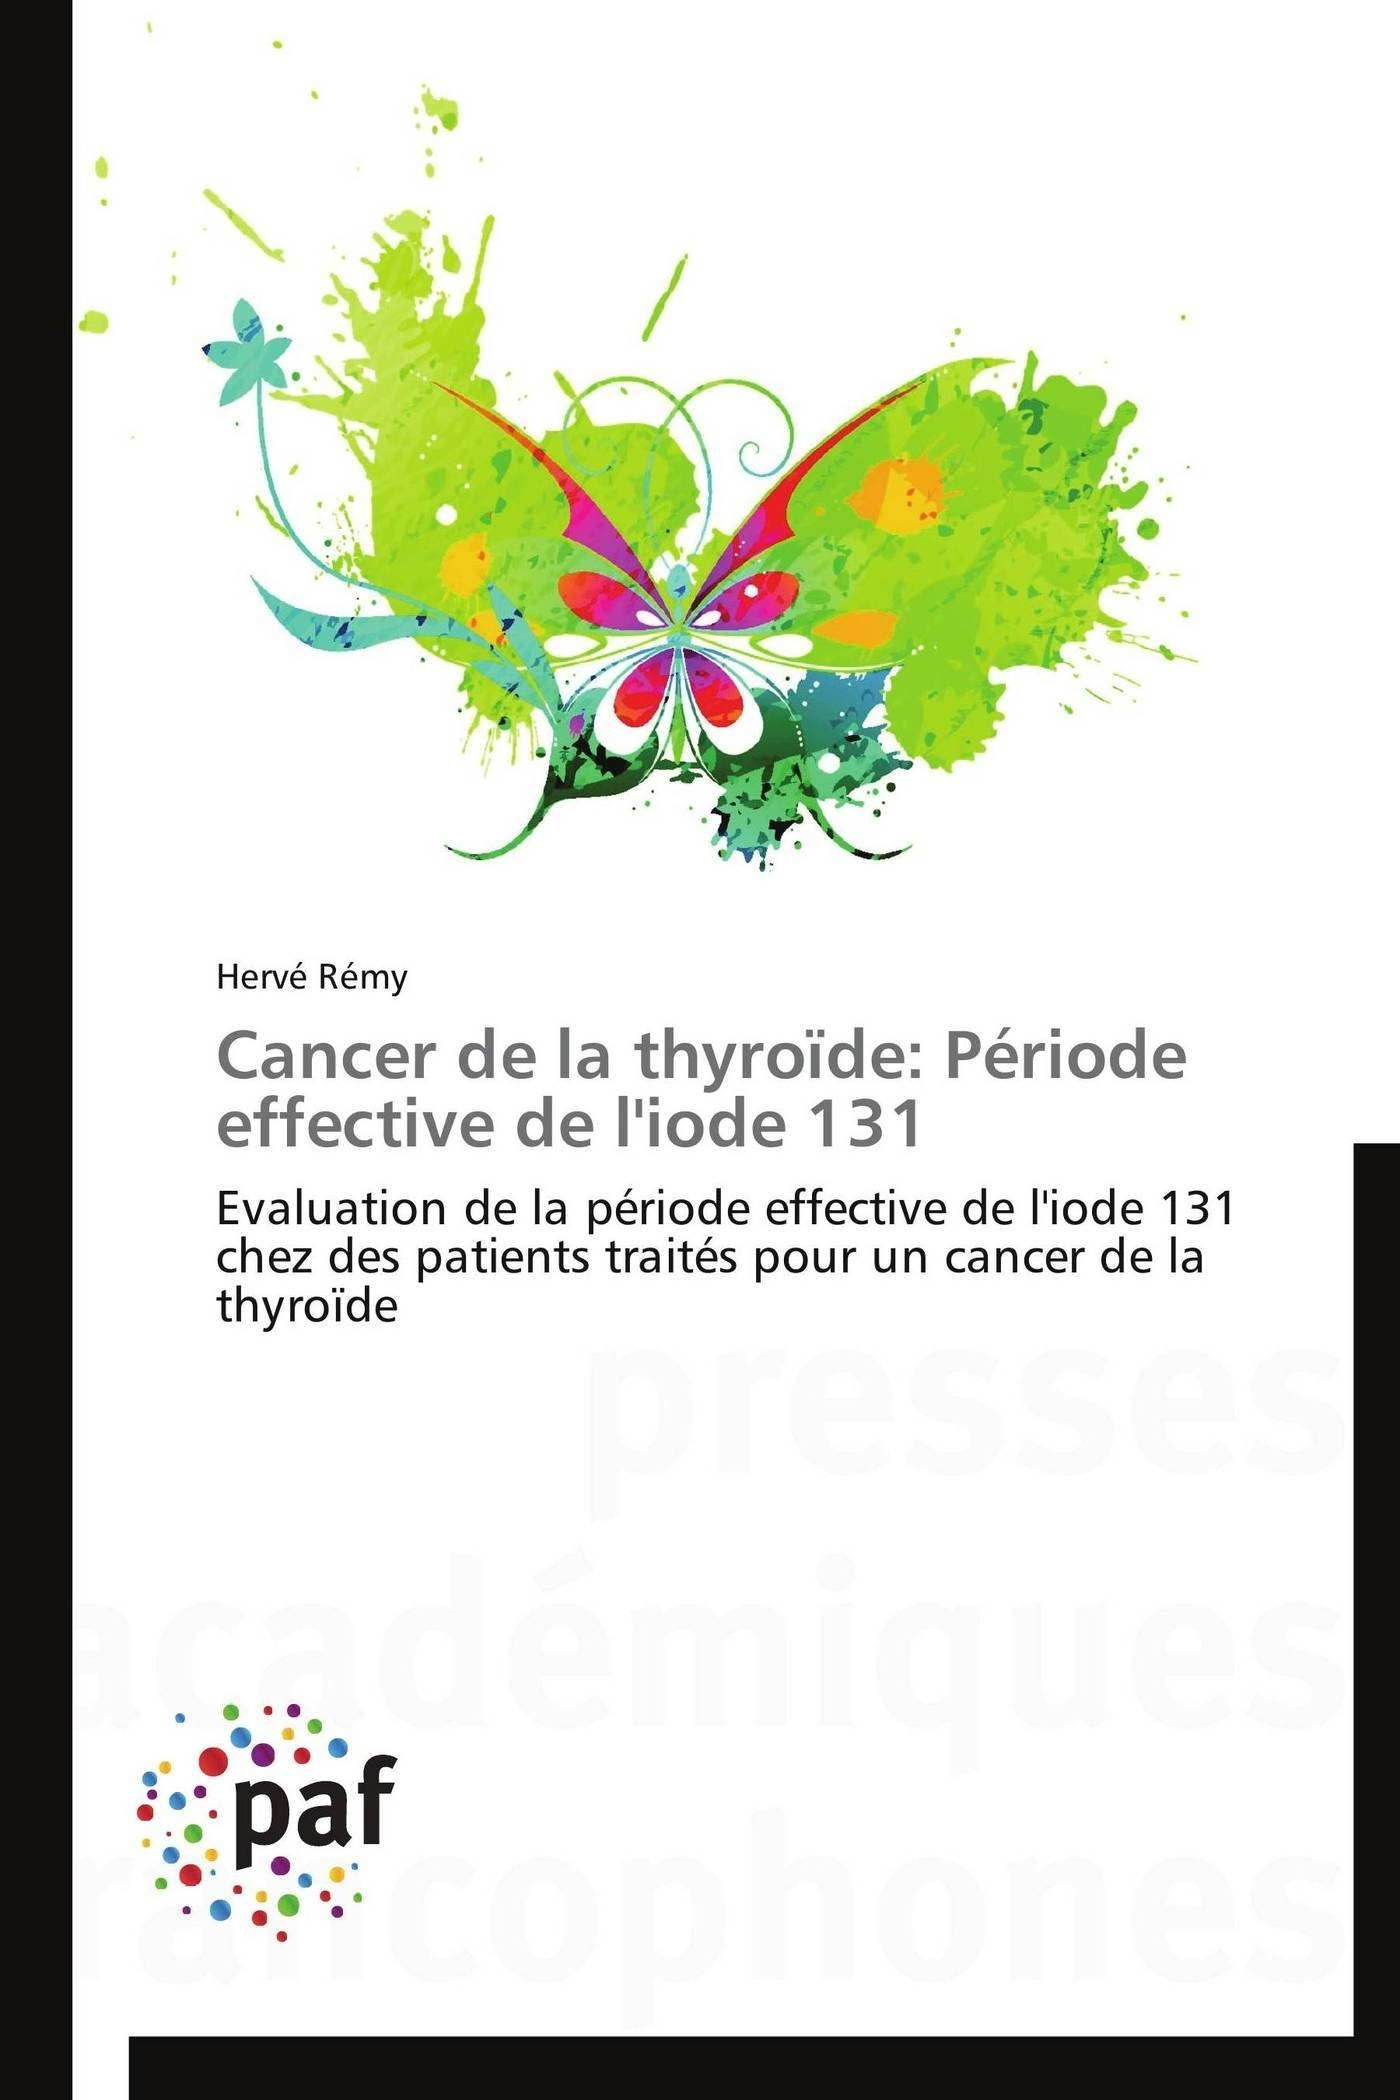 CANCER DE LA THYROIDE: PERIODE EFFECTIVE DE L'IODE 131